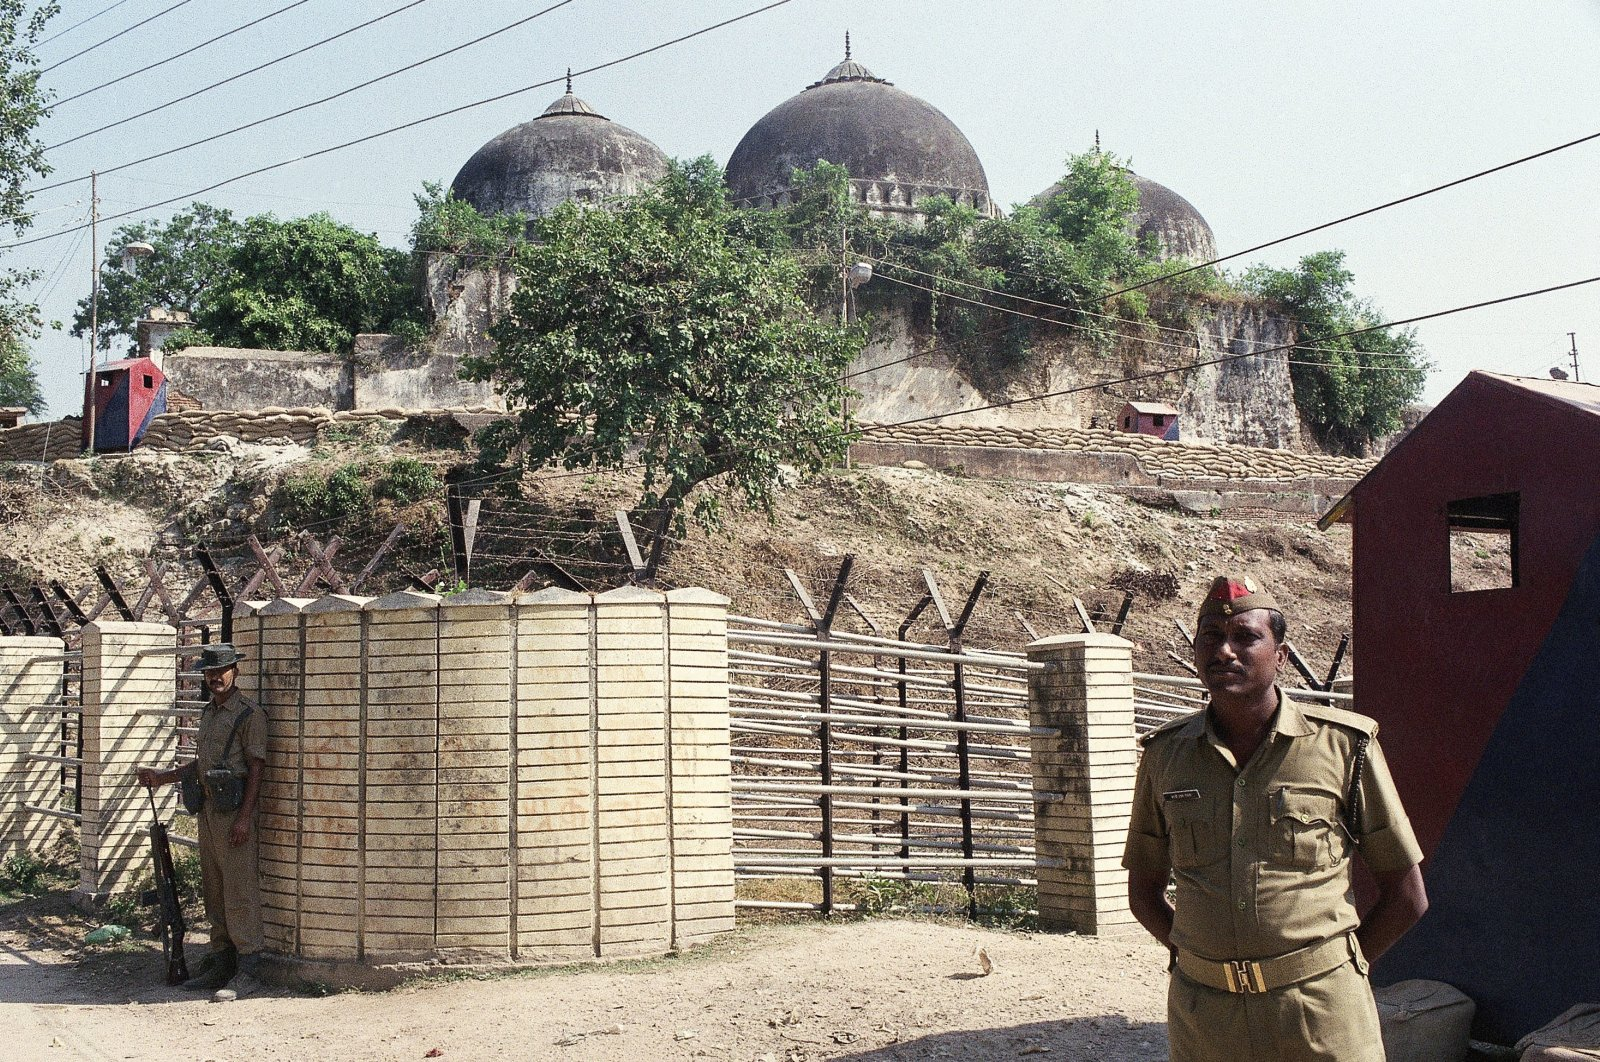 Security officers guard the Babri Mosque in Ayodhya, closing off the disputed site, Oct. 29, 1990. (AP Photo)